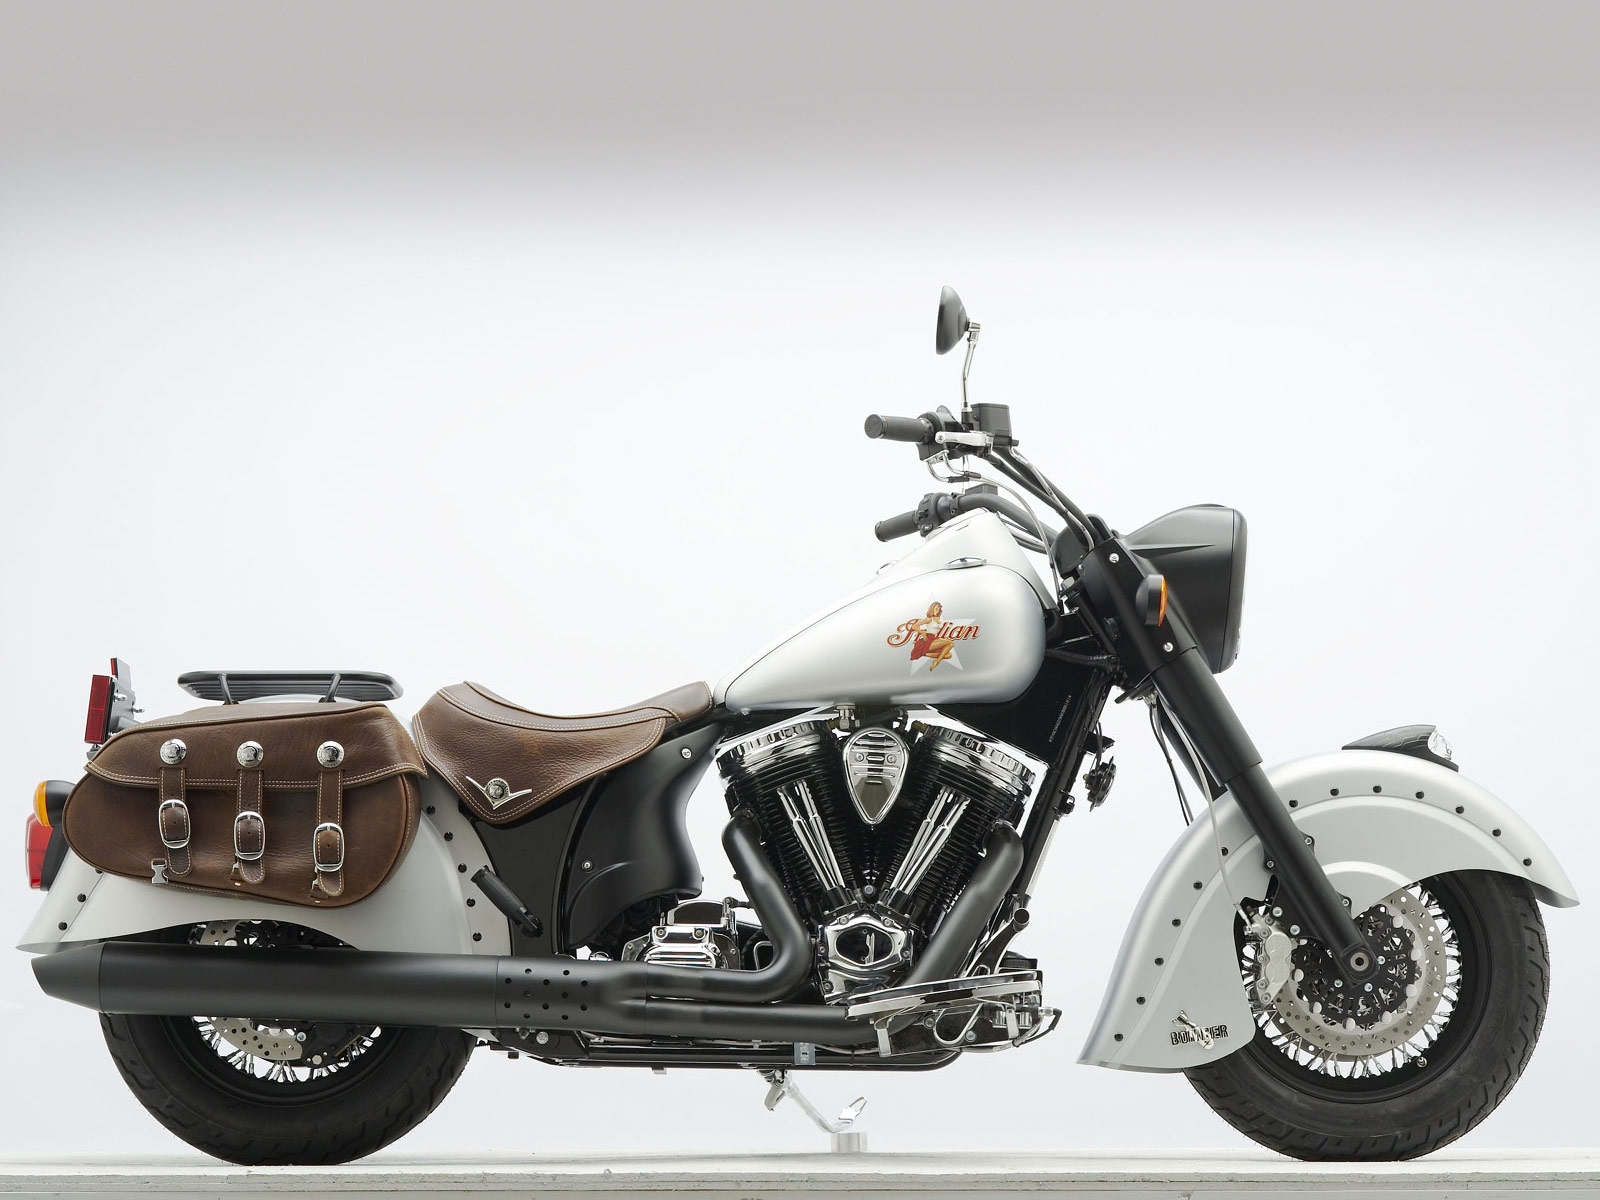 Indian Motorcycles Wallpaper Indian motorcycle 1600x1200